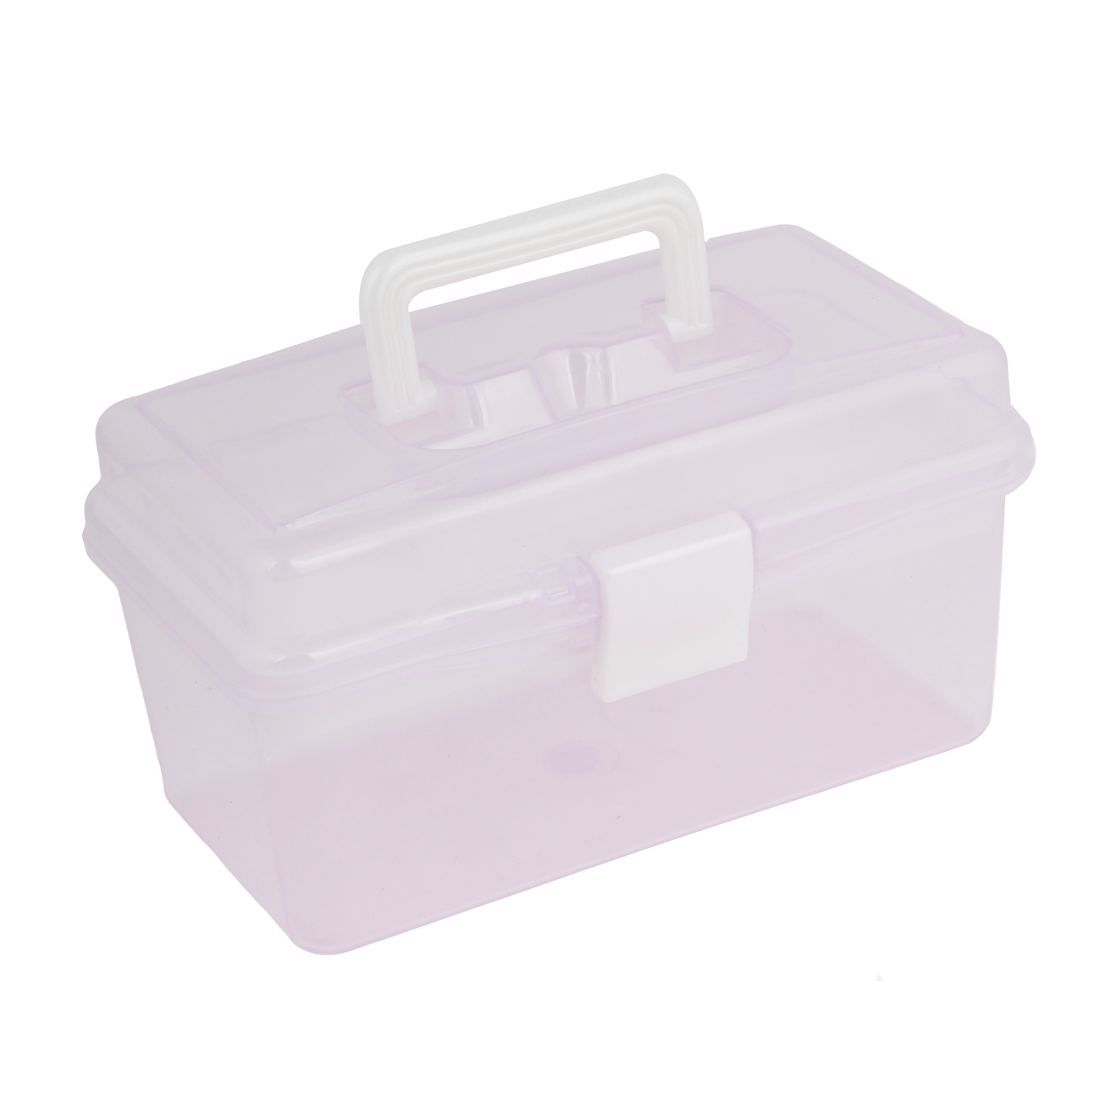 Uxcell a13091200ux0403 Rectangular Shaped 2 Layers Tool Storage Box Case with Handle, Purple by Unique-Bargains